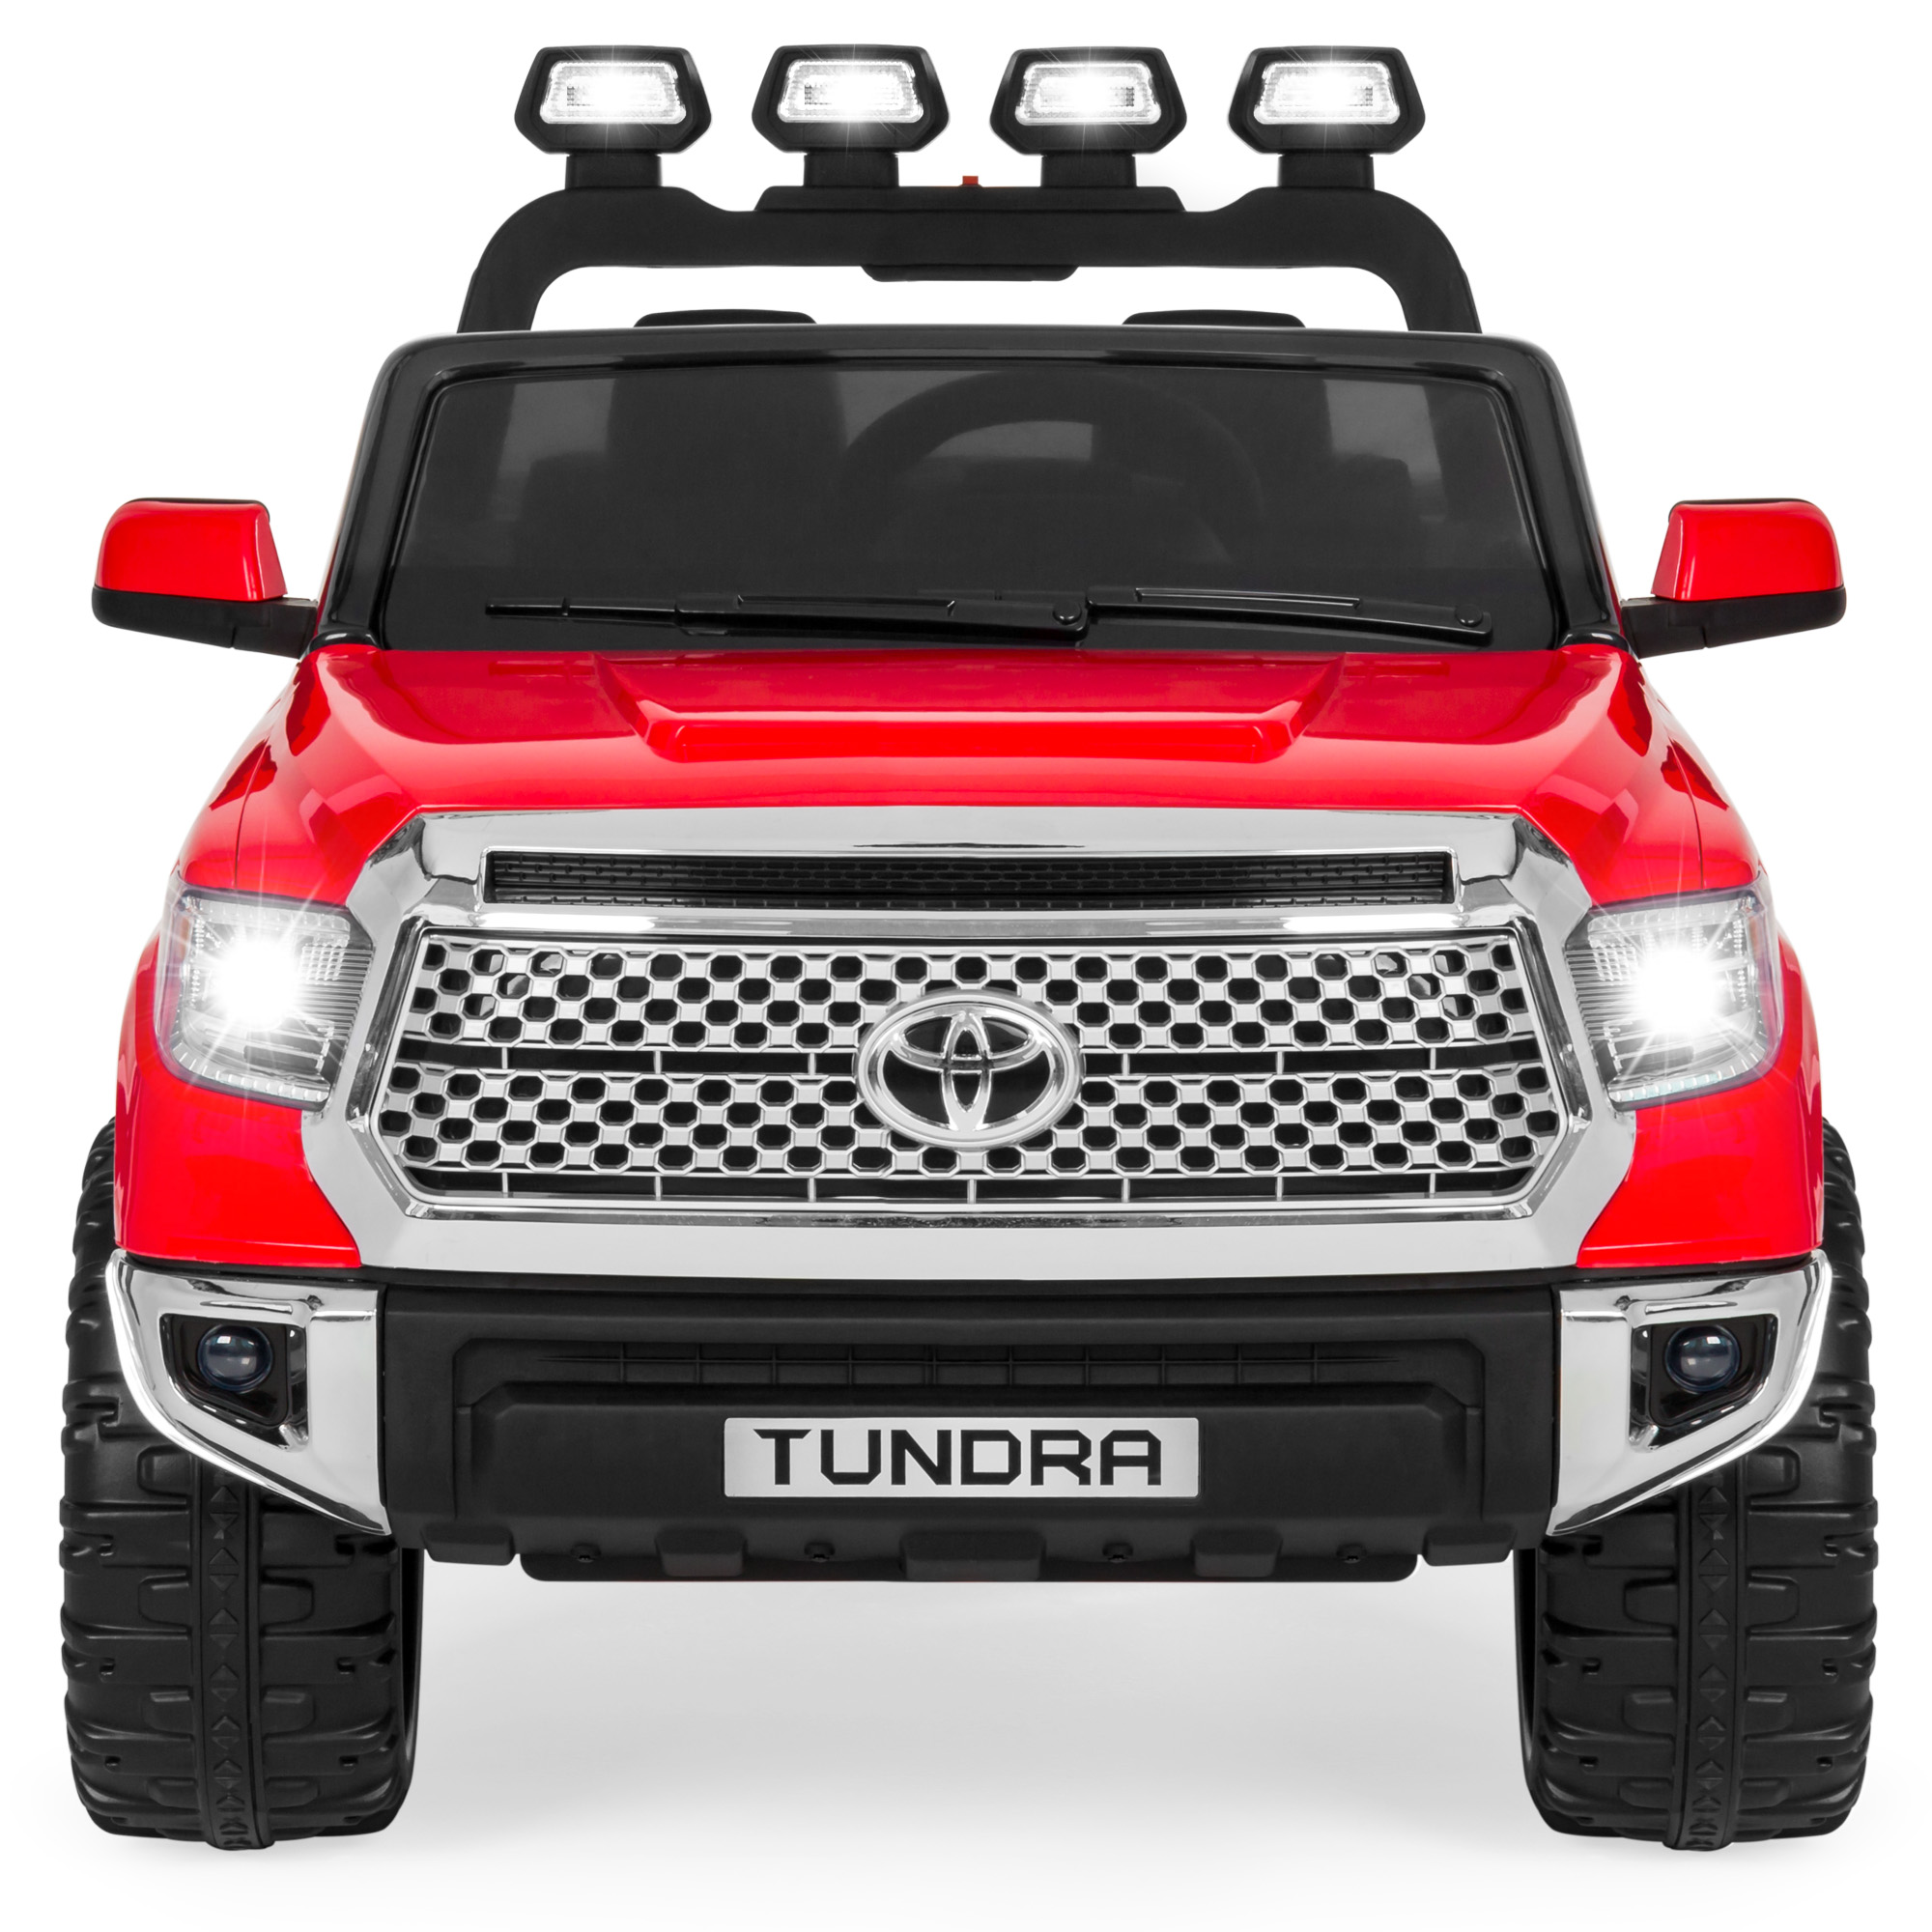 Best Choice Products 12V Kids Battery Powered Remote Control Toyota Tundra Ride On Truck Red by Best Choice Products